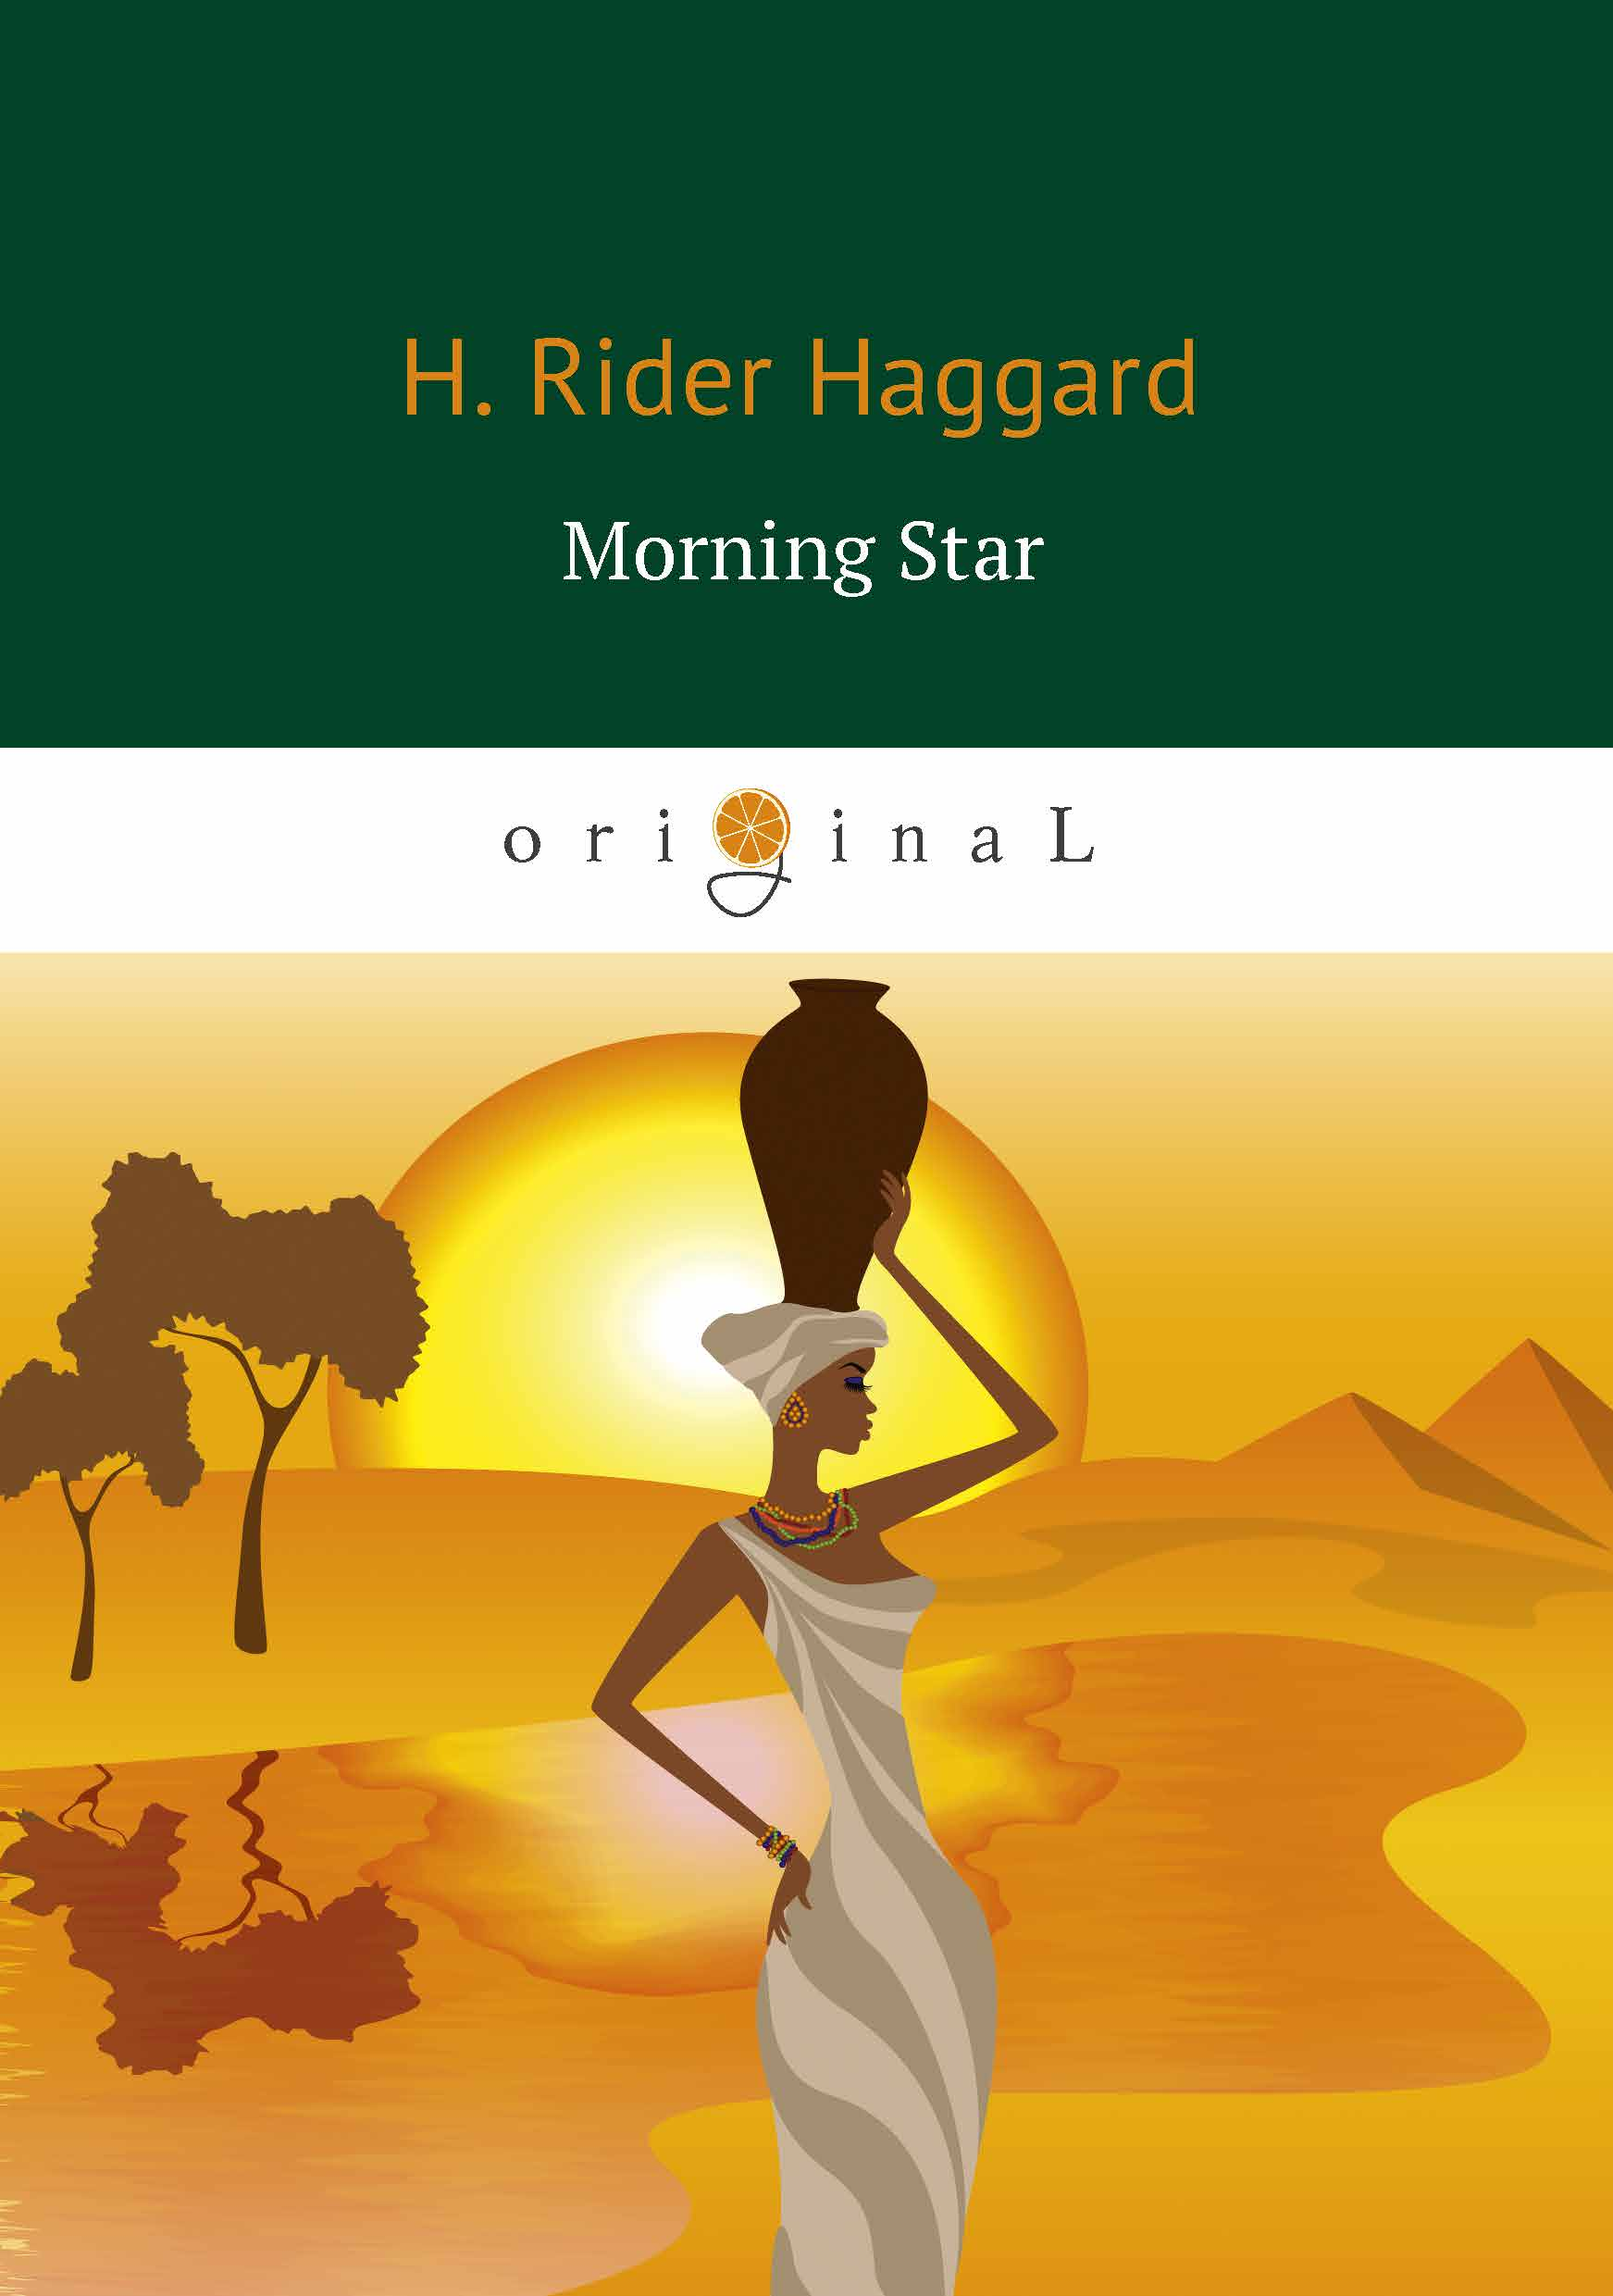 H. Rider Haggard Morning Star (Утренняя звезда) ISBN: 978-5-521-06622-3 все цены